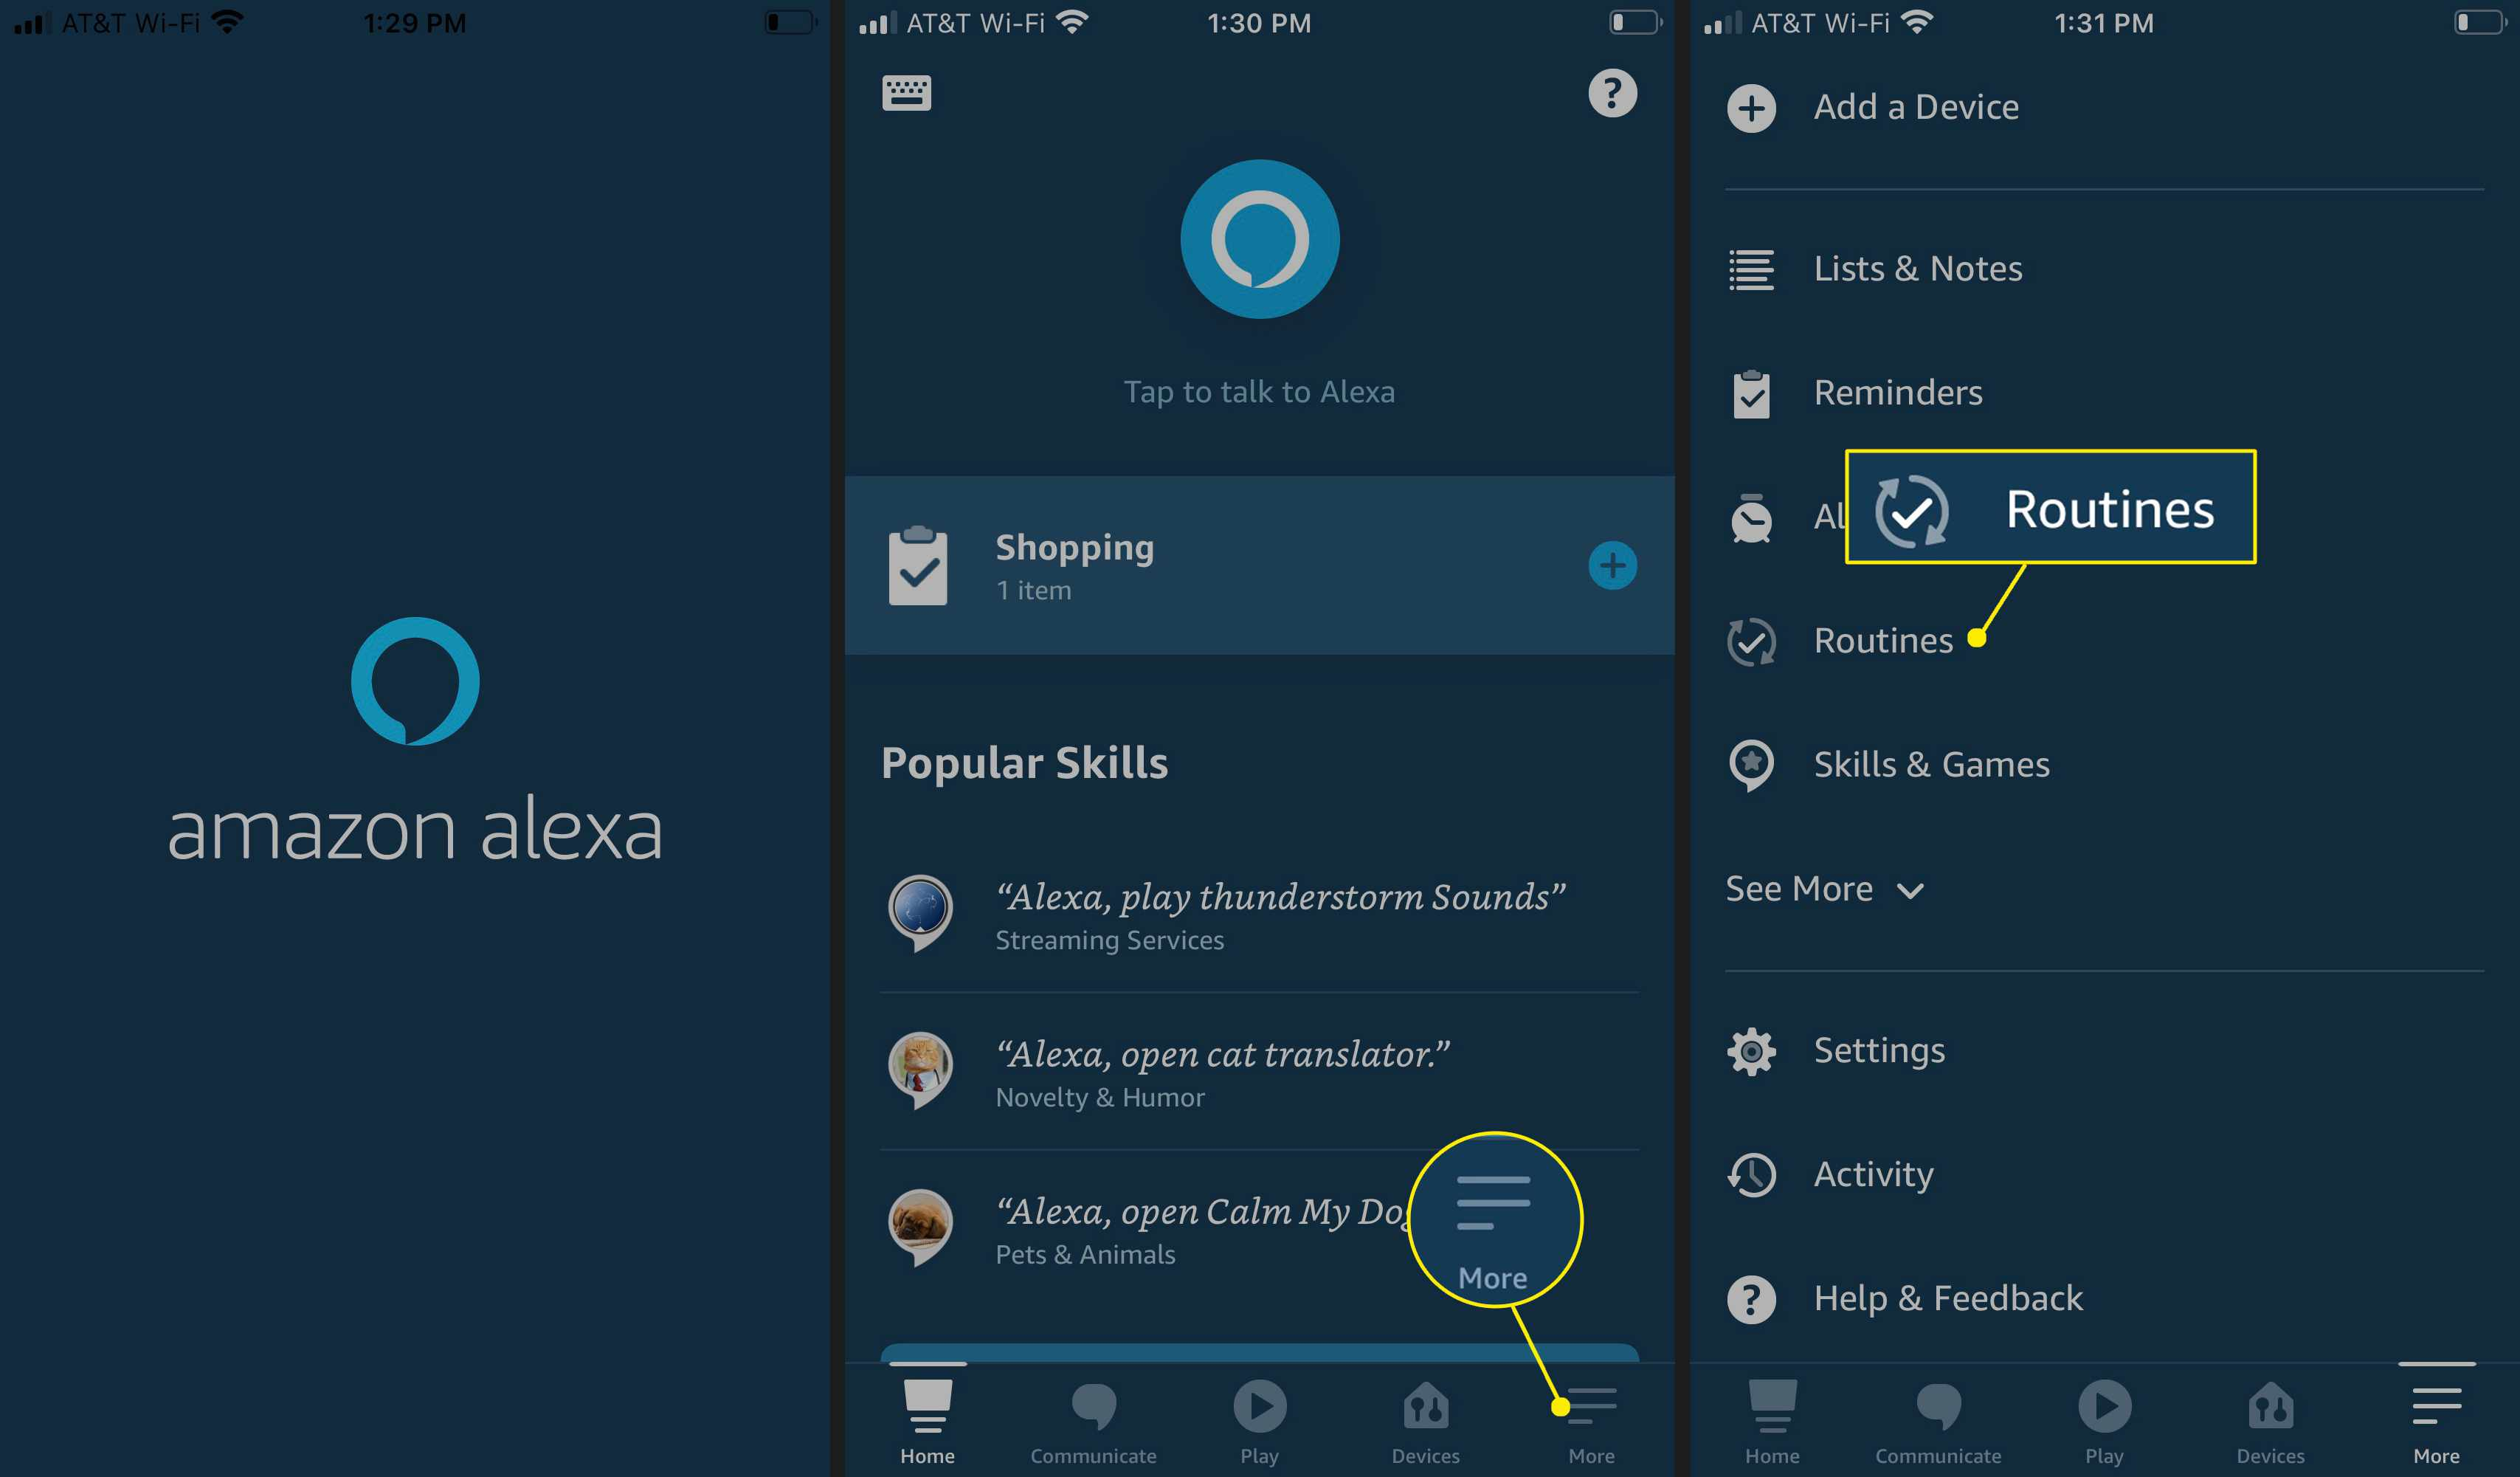 In the Amazon Alexa app, select More > Routines